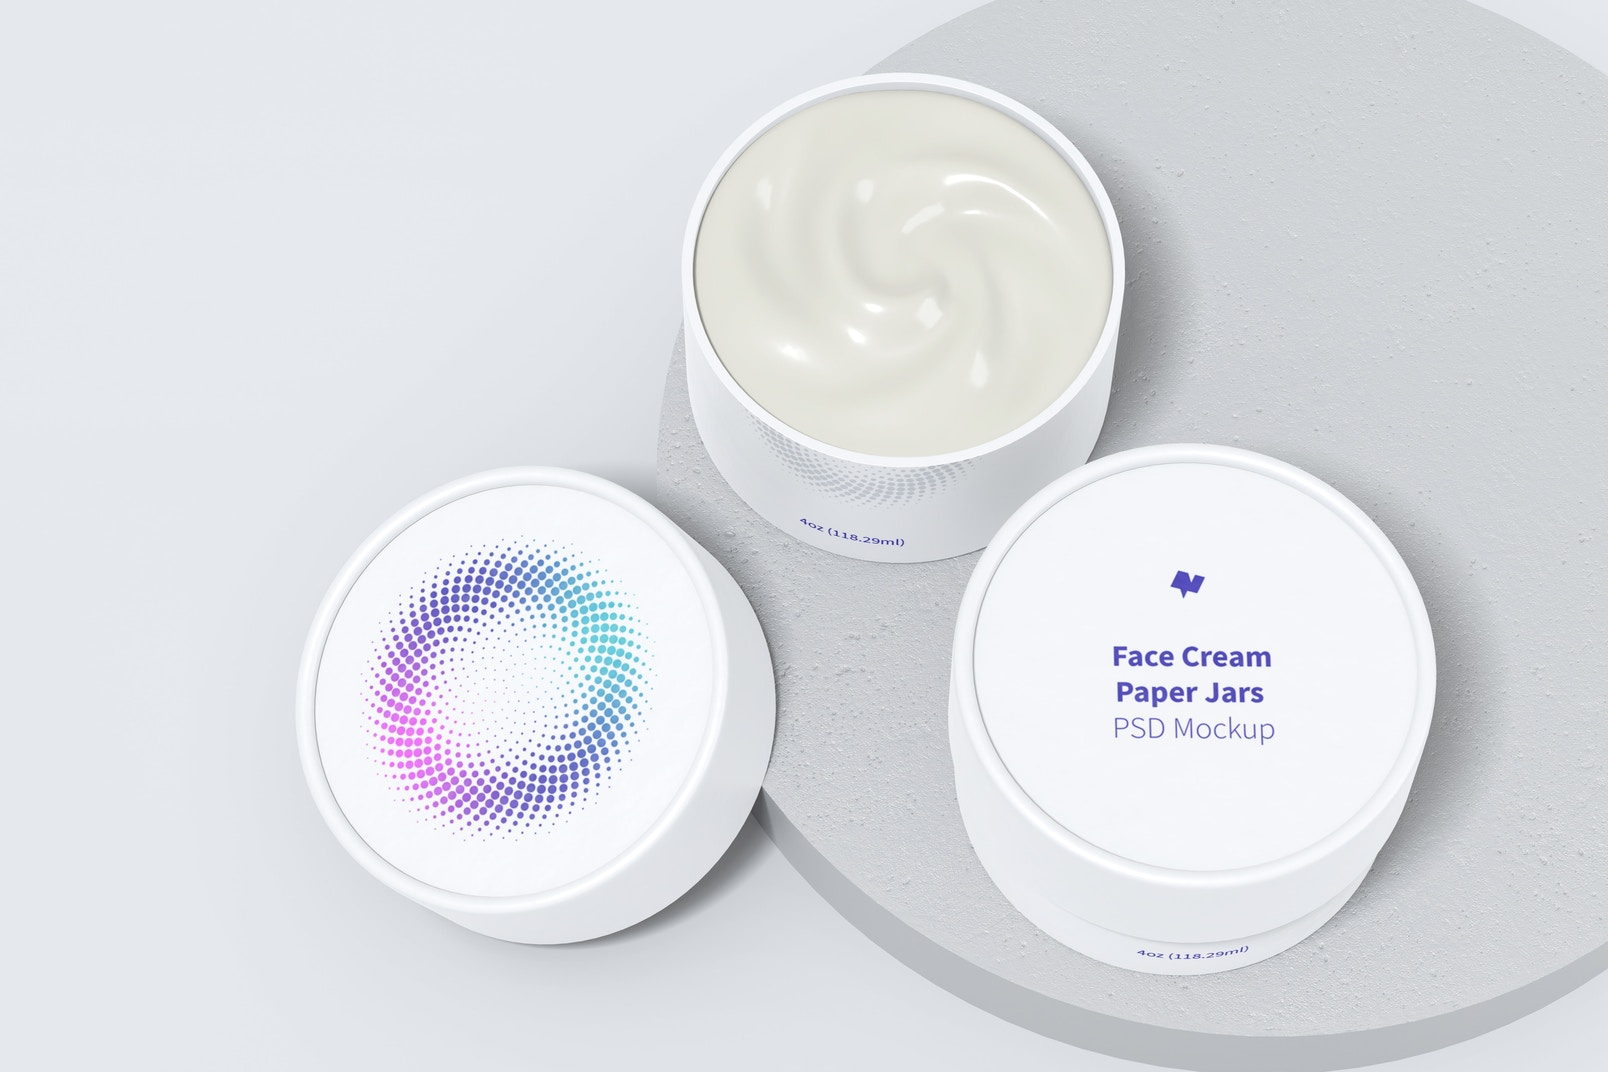 4oz Face Cream Paper Jars Mockup, with Round Stone